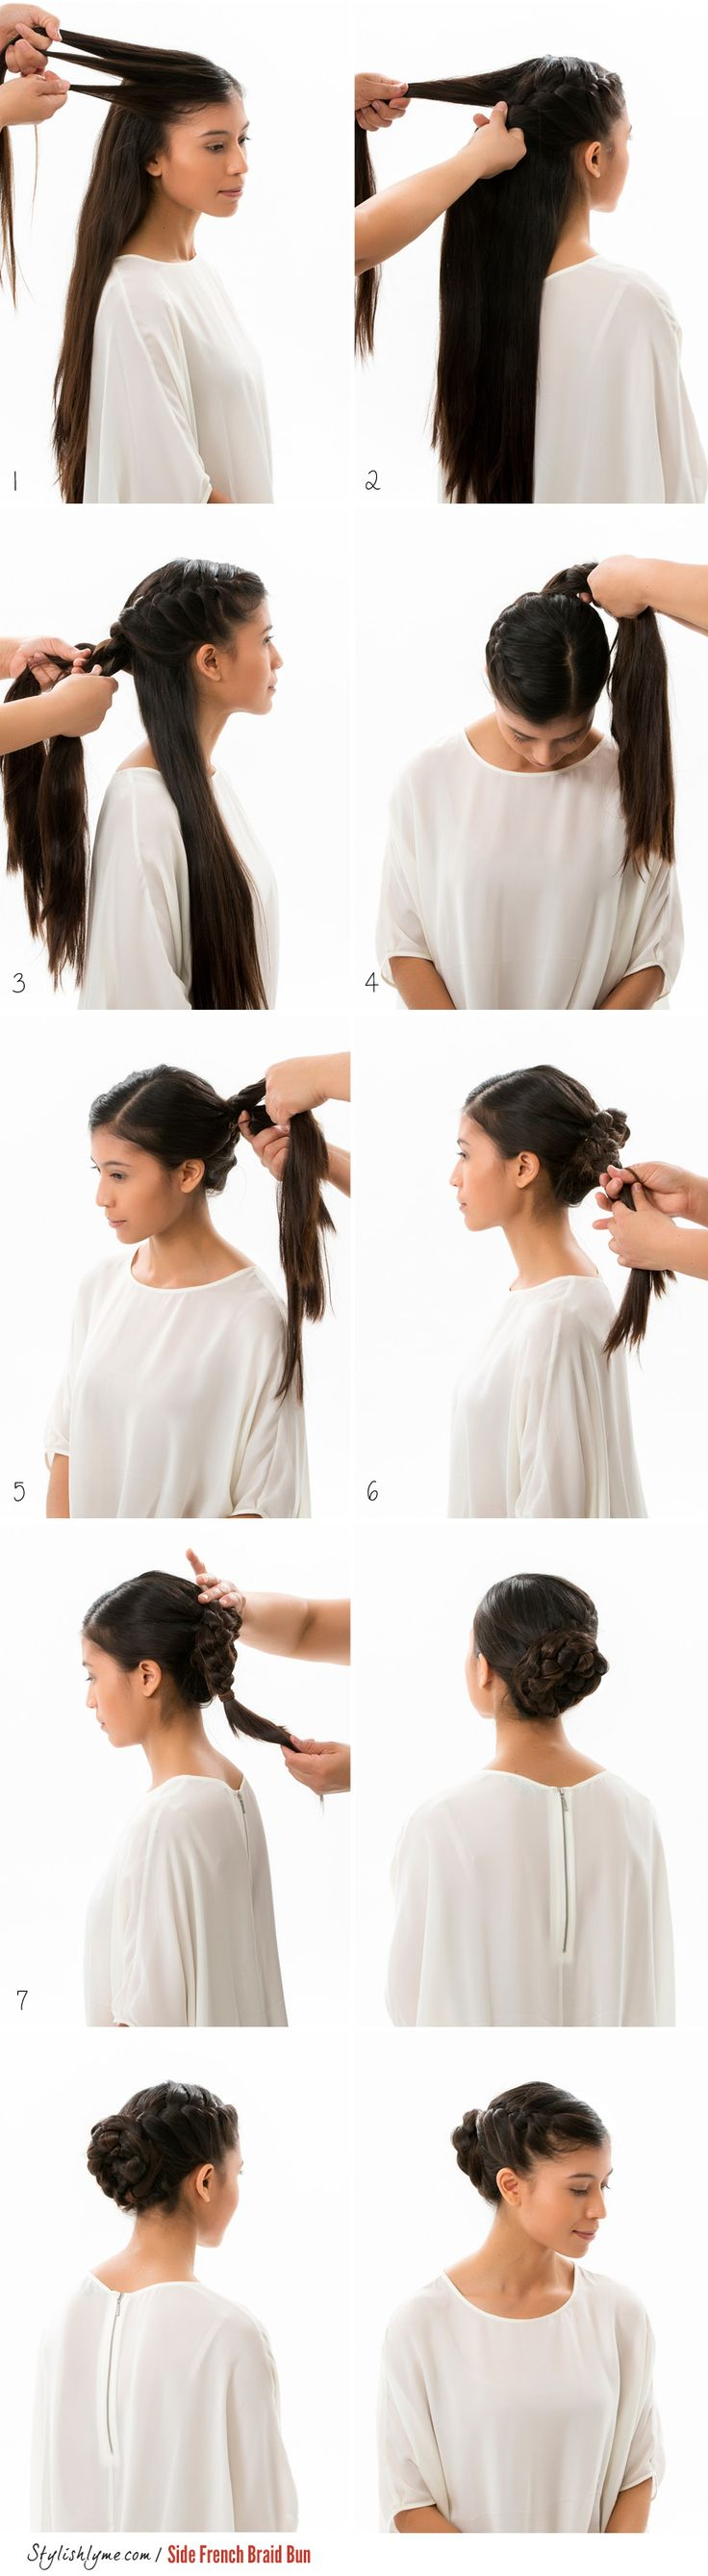 The 25 best side french braids ideas on pinterest french braid the 25 best side french braids ideas on pinterest french braid buns french braided ponytail and braid ponytail ccuart Images